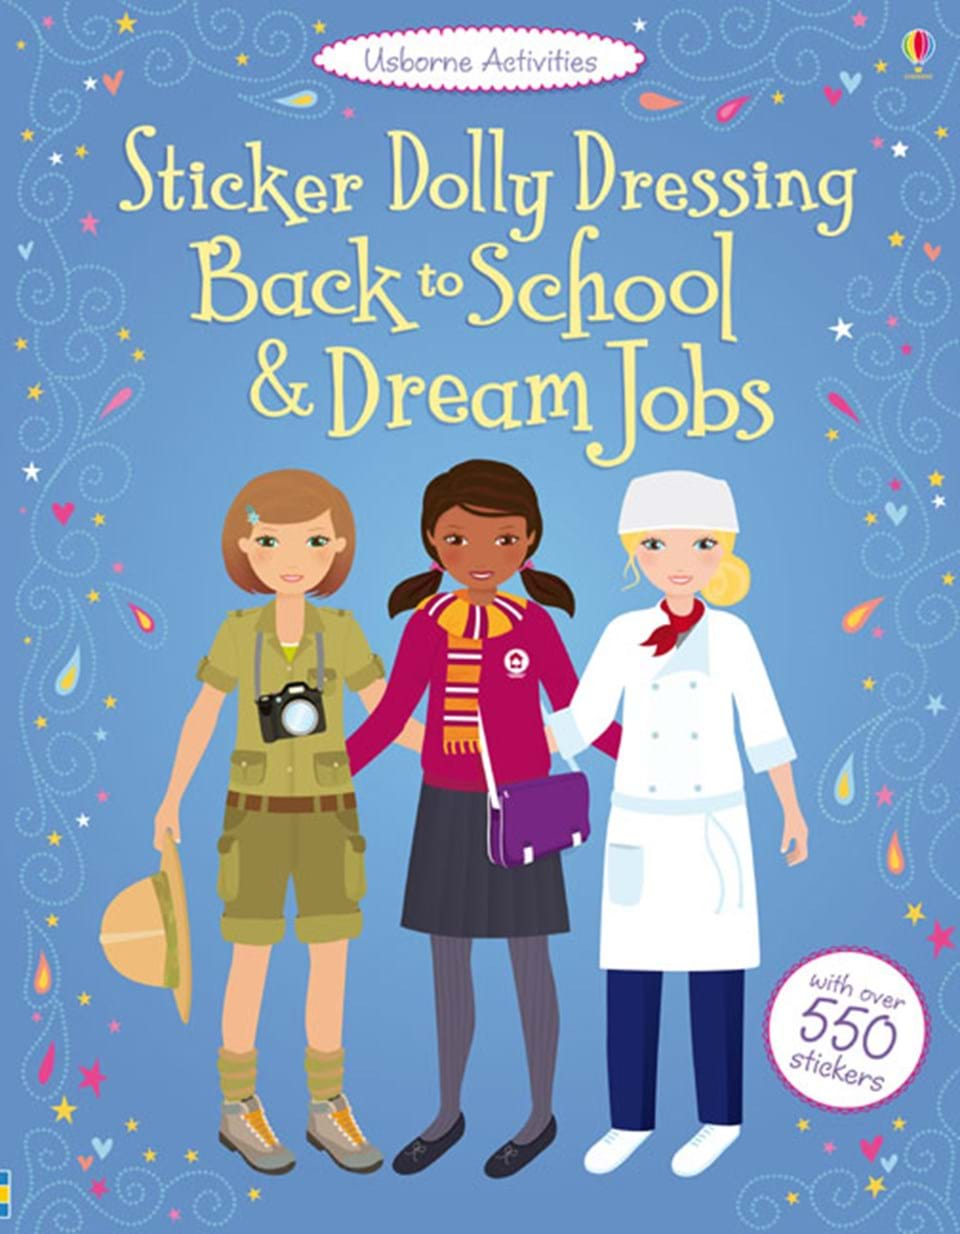 back to school and dream jobs at usborne books at home back to school and dream jobs